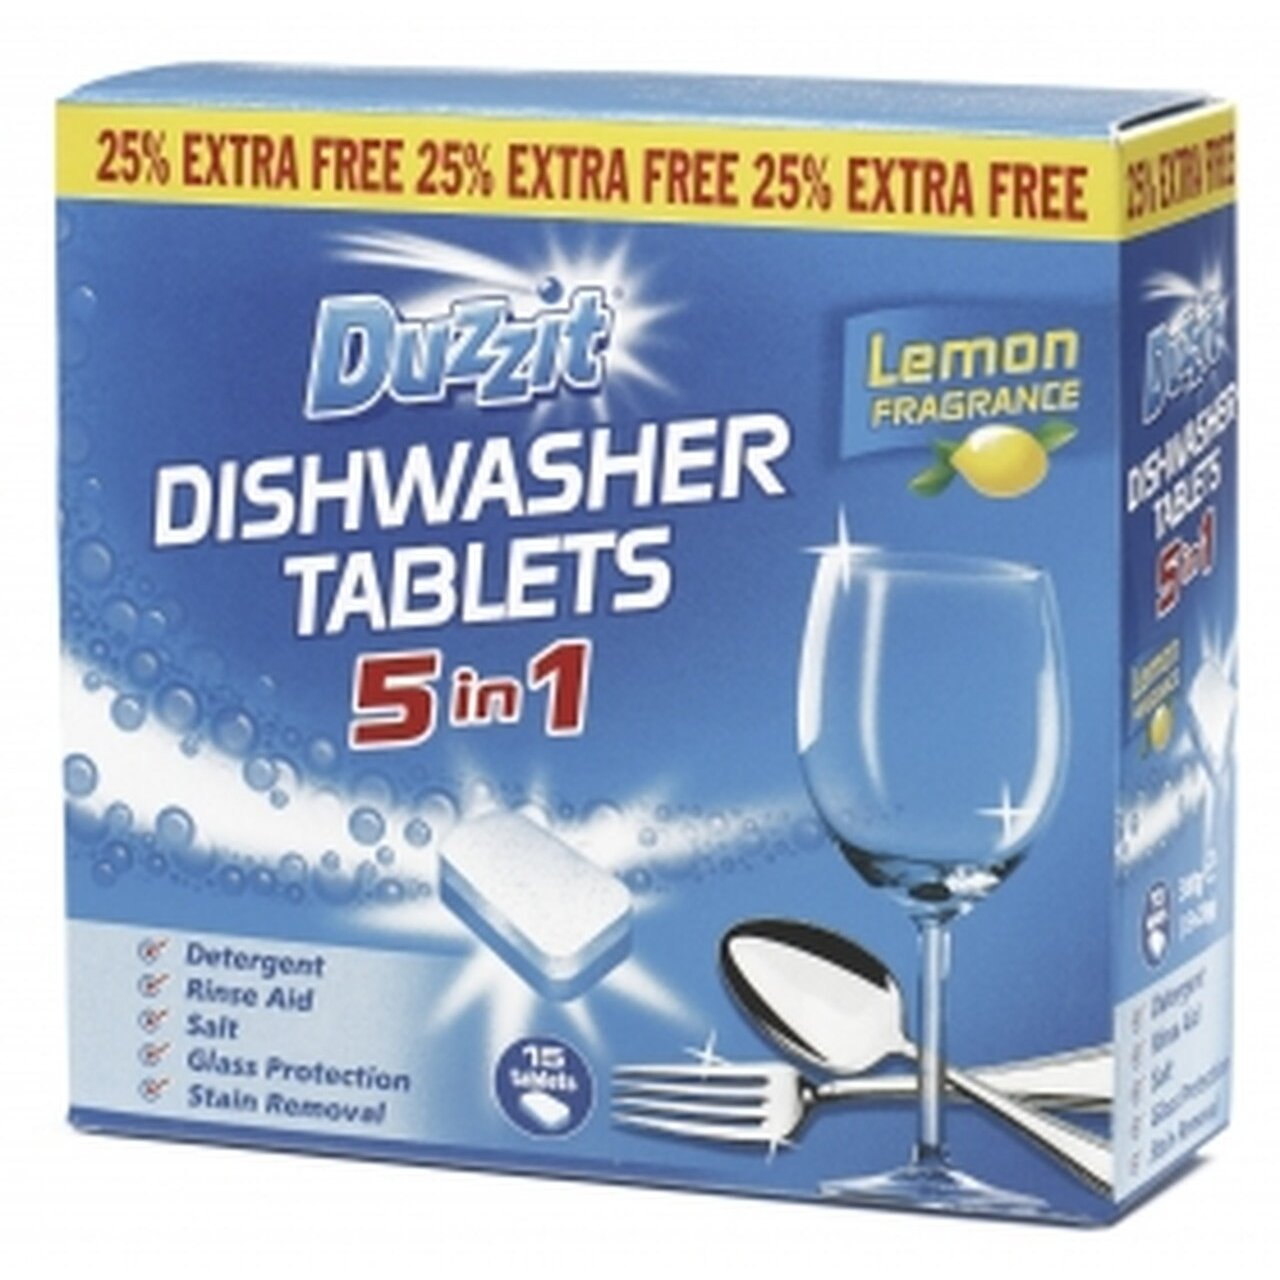 Duzzit 5in1 Dishwasher Tablets (15 Pack)